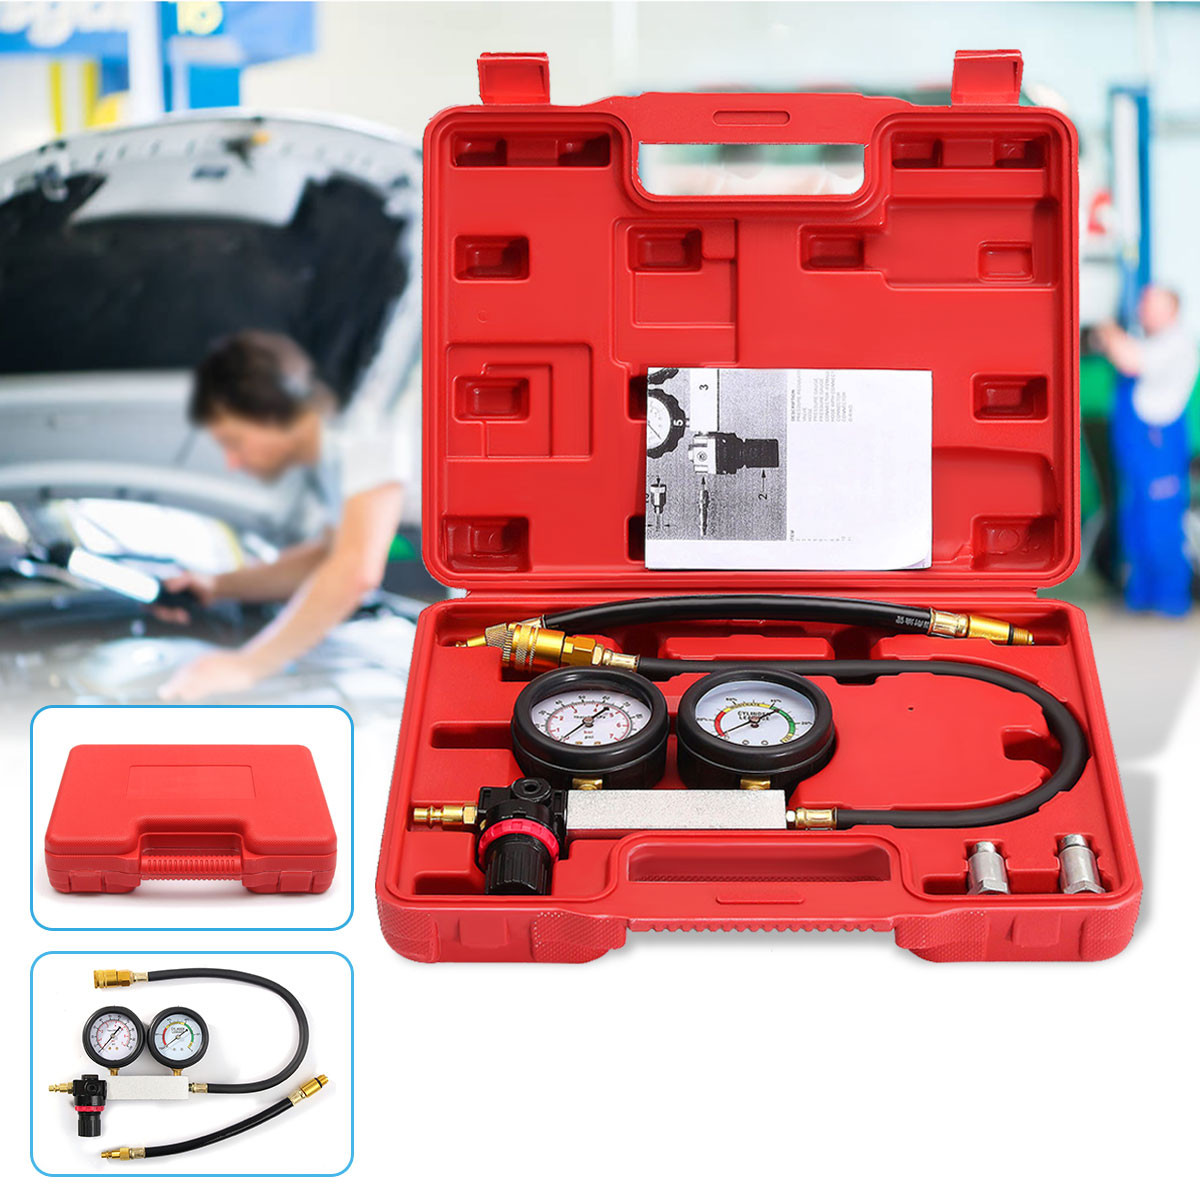 0-100PSI Cylinder Leak Tester Compression Leakage Detector Kit Set Petrol Engine Gauge Tool Double Gauge System Automobile Tools